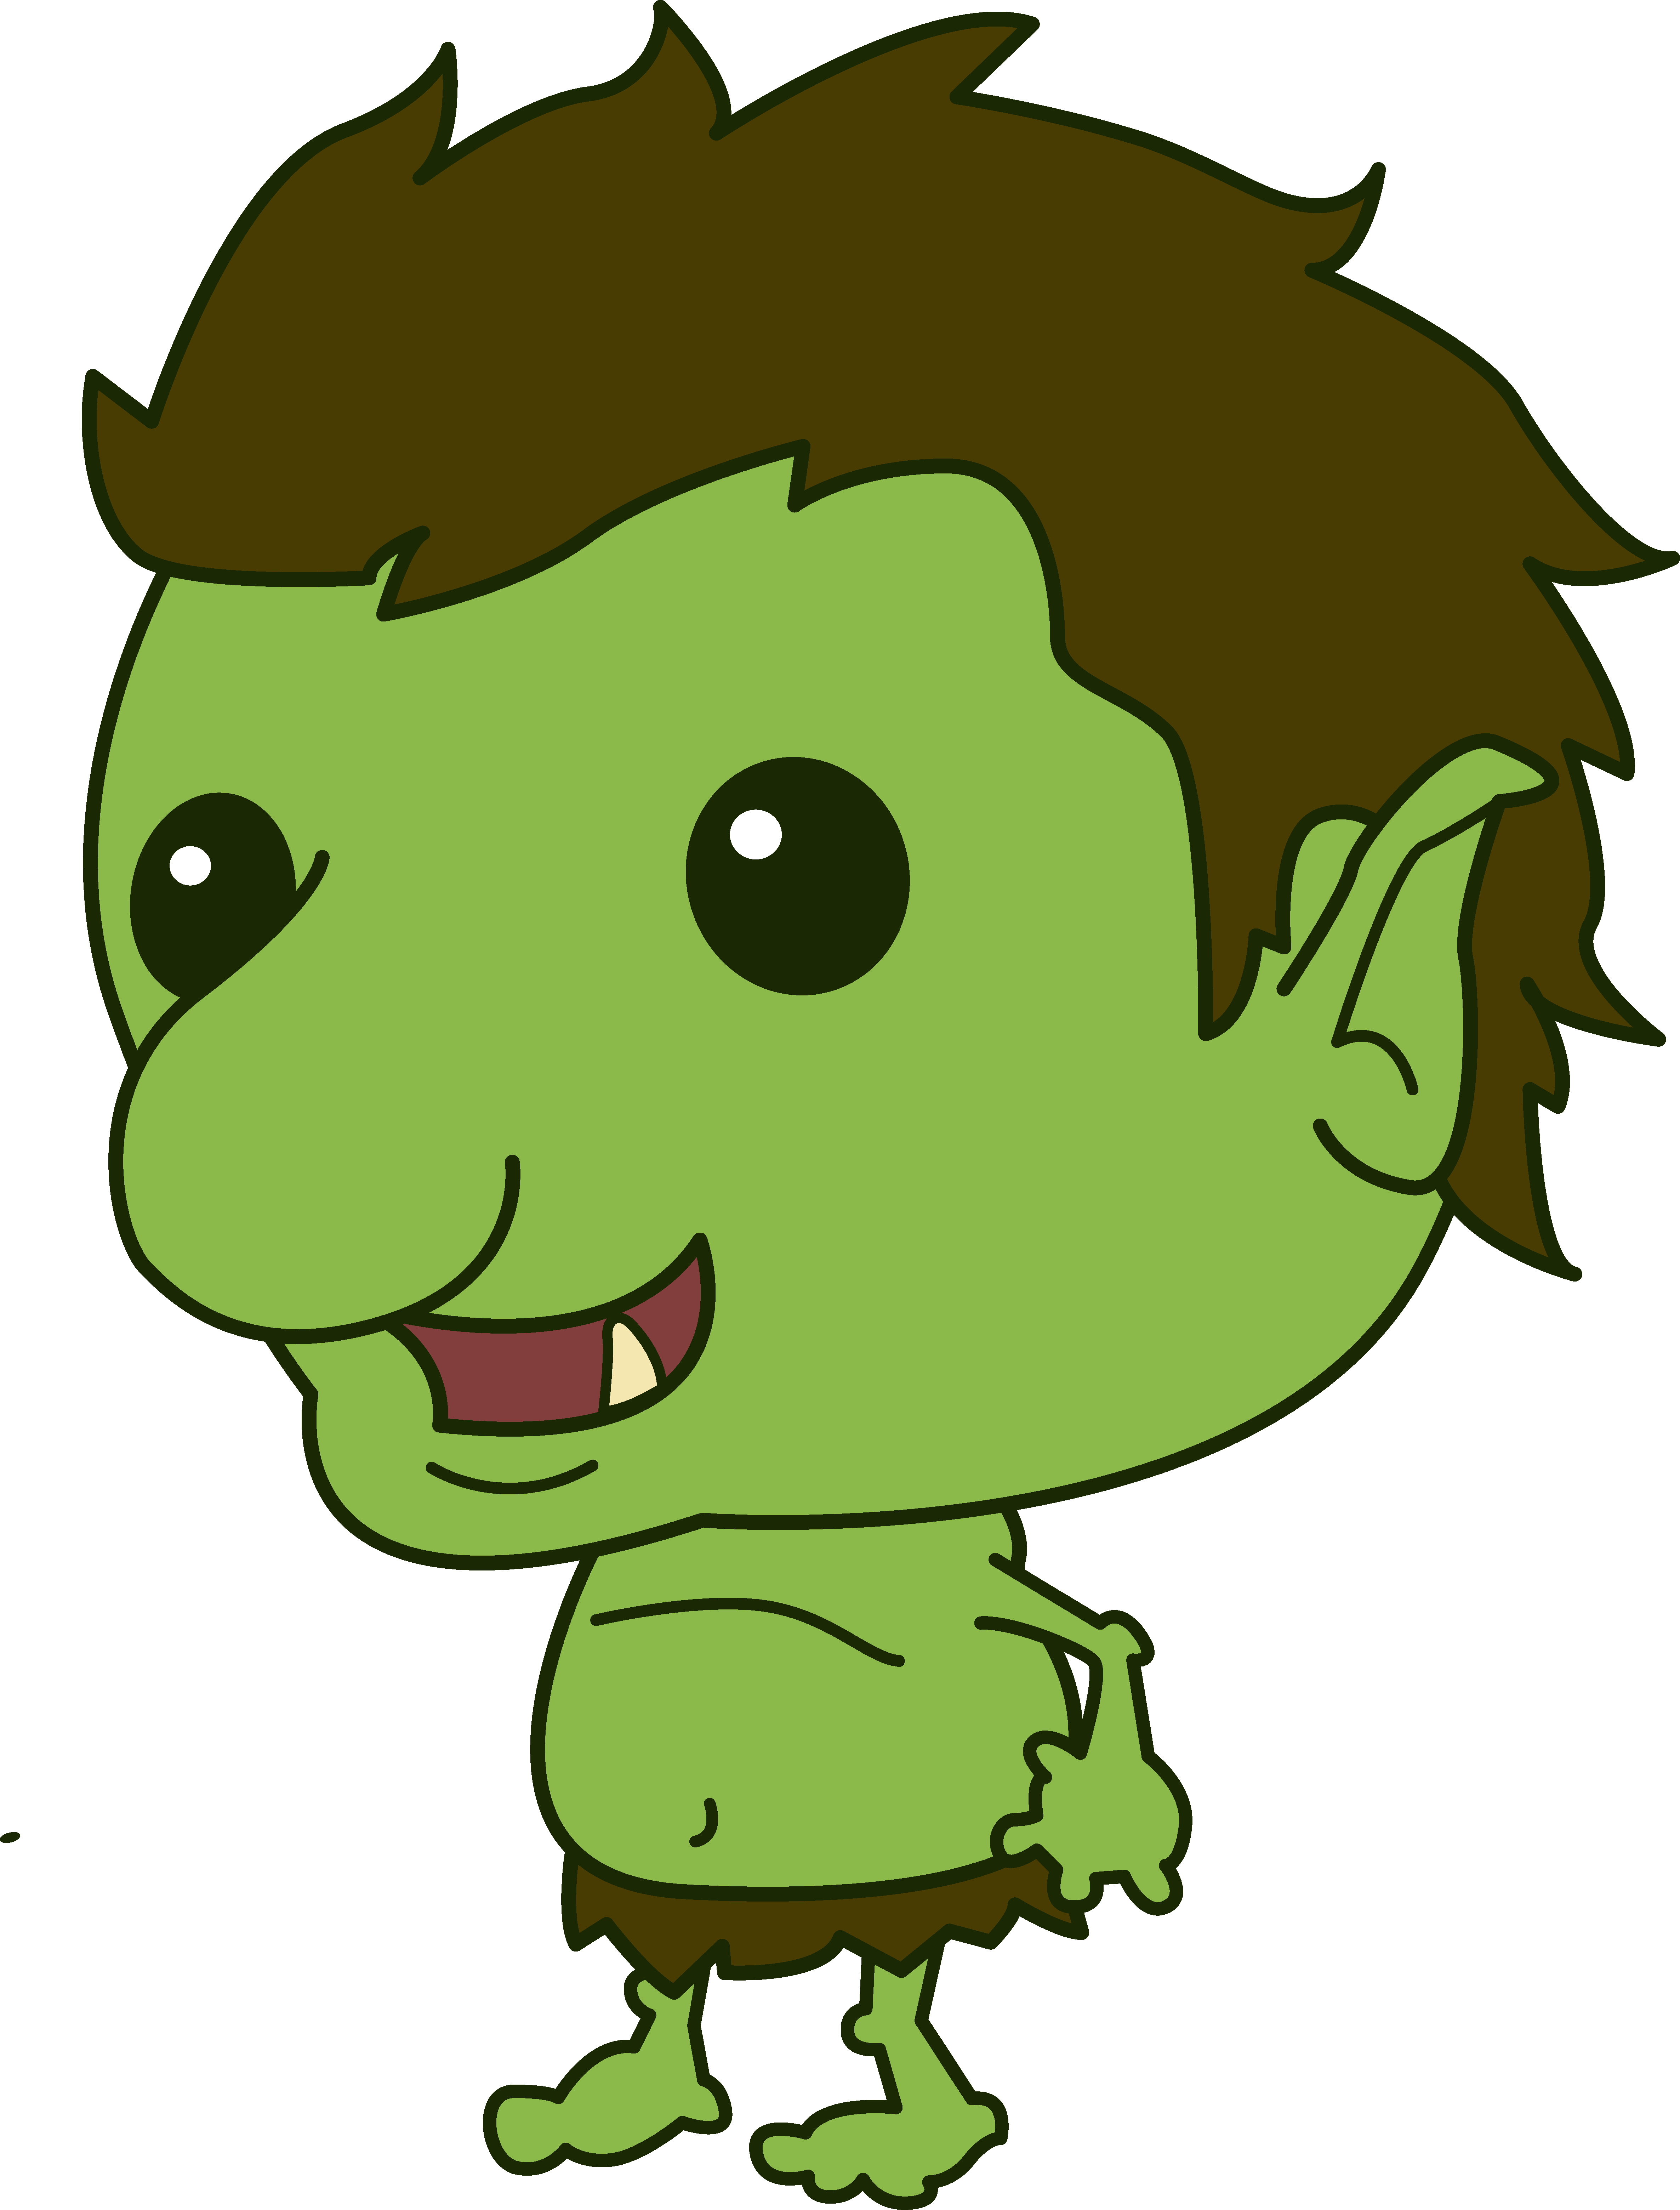 Free troll cliparts download. Trolls clipart graphic freeuse stock